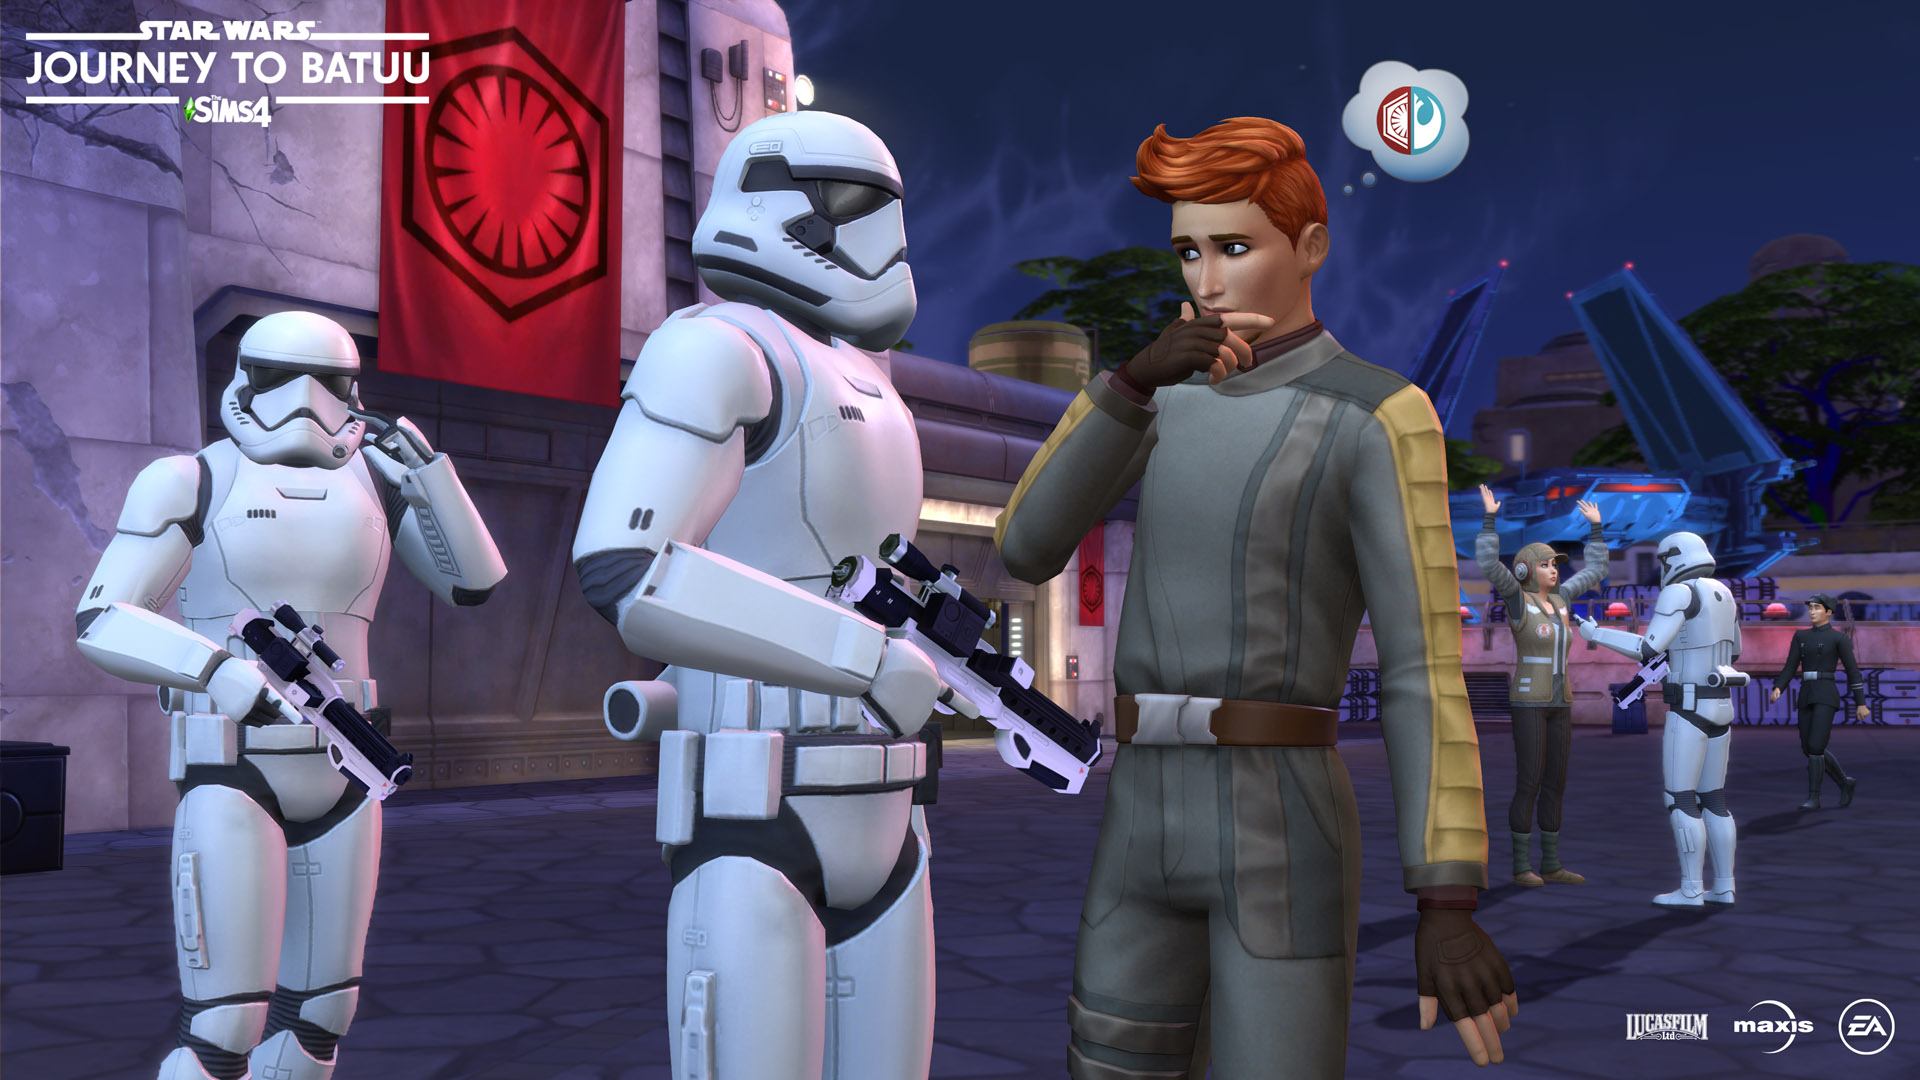 Sims 4 Journey to Batuu Review